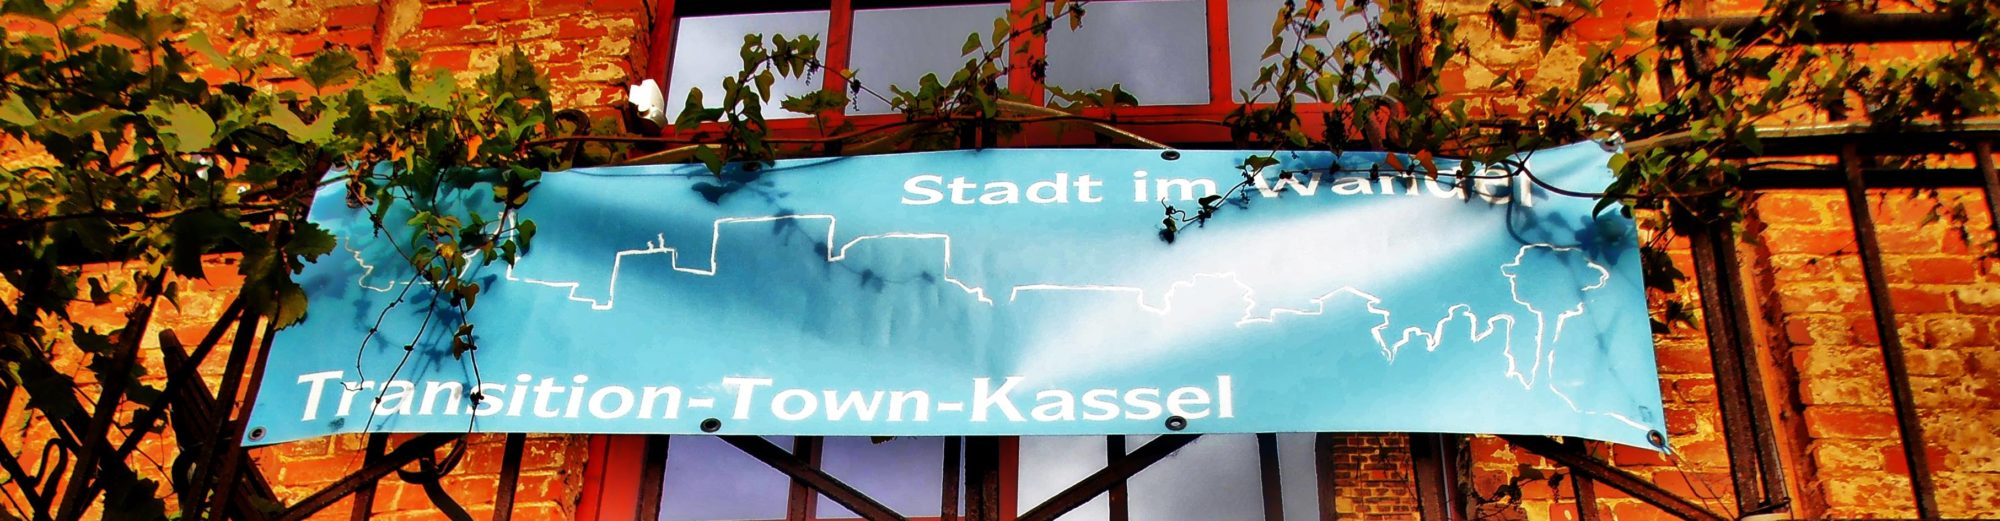 Transition Town Kassel